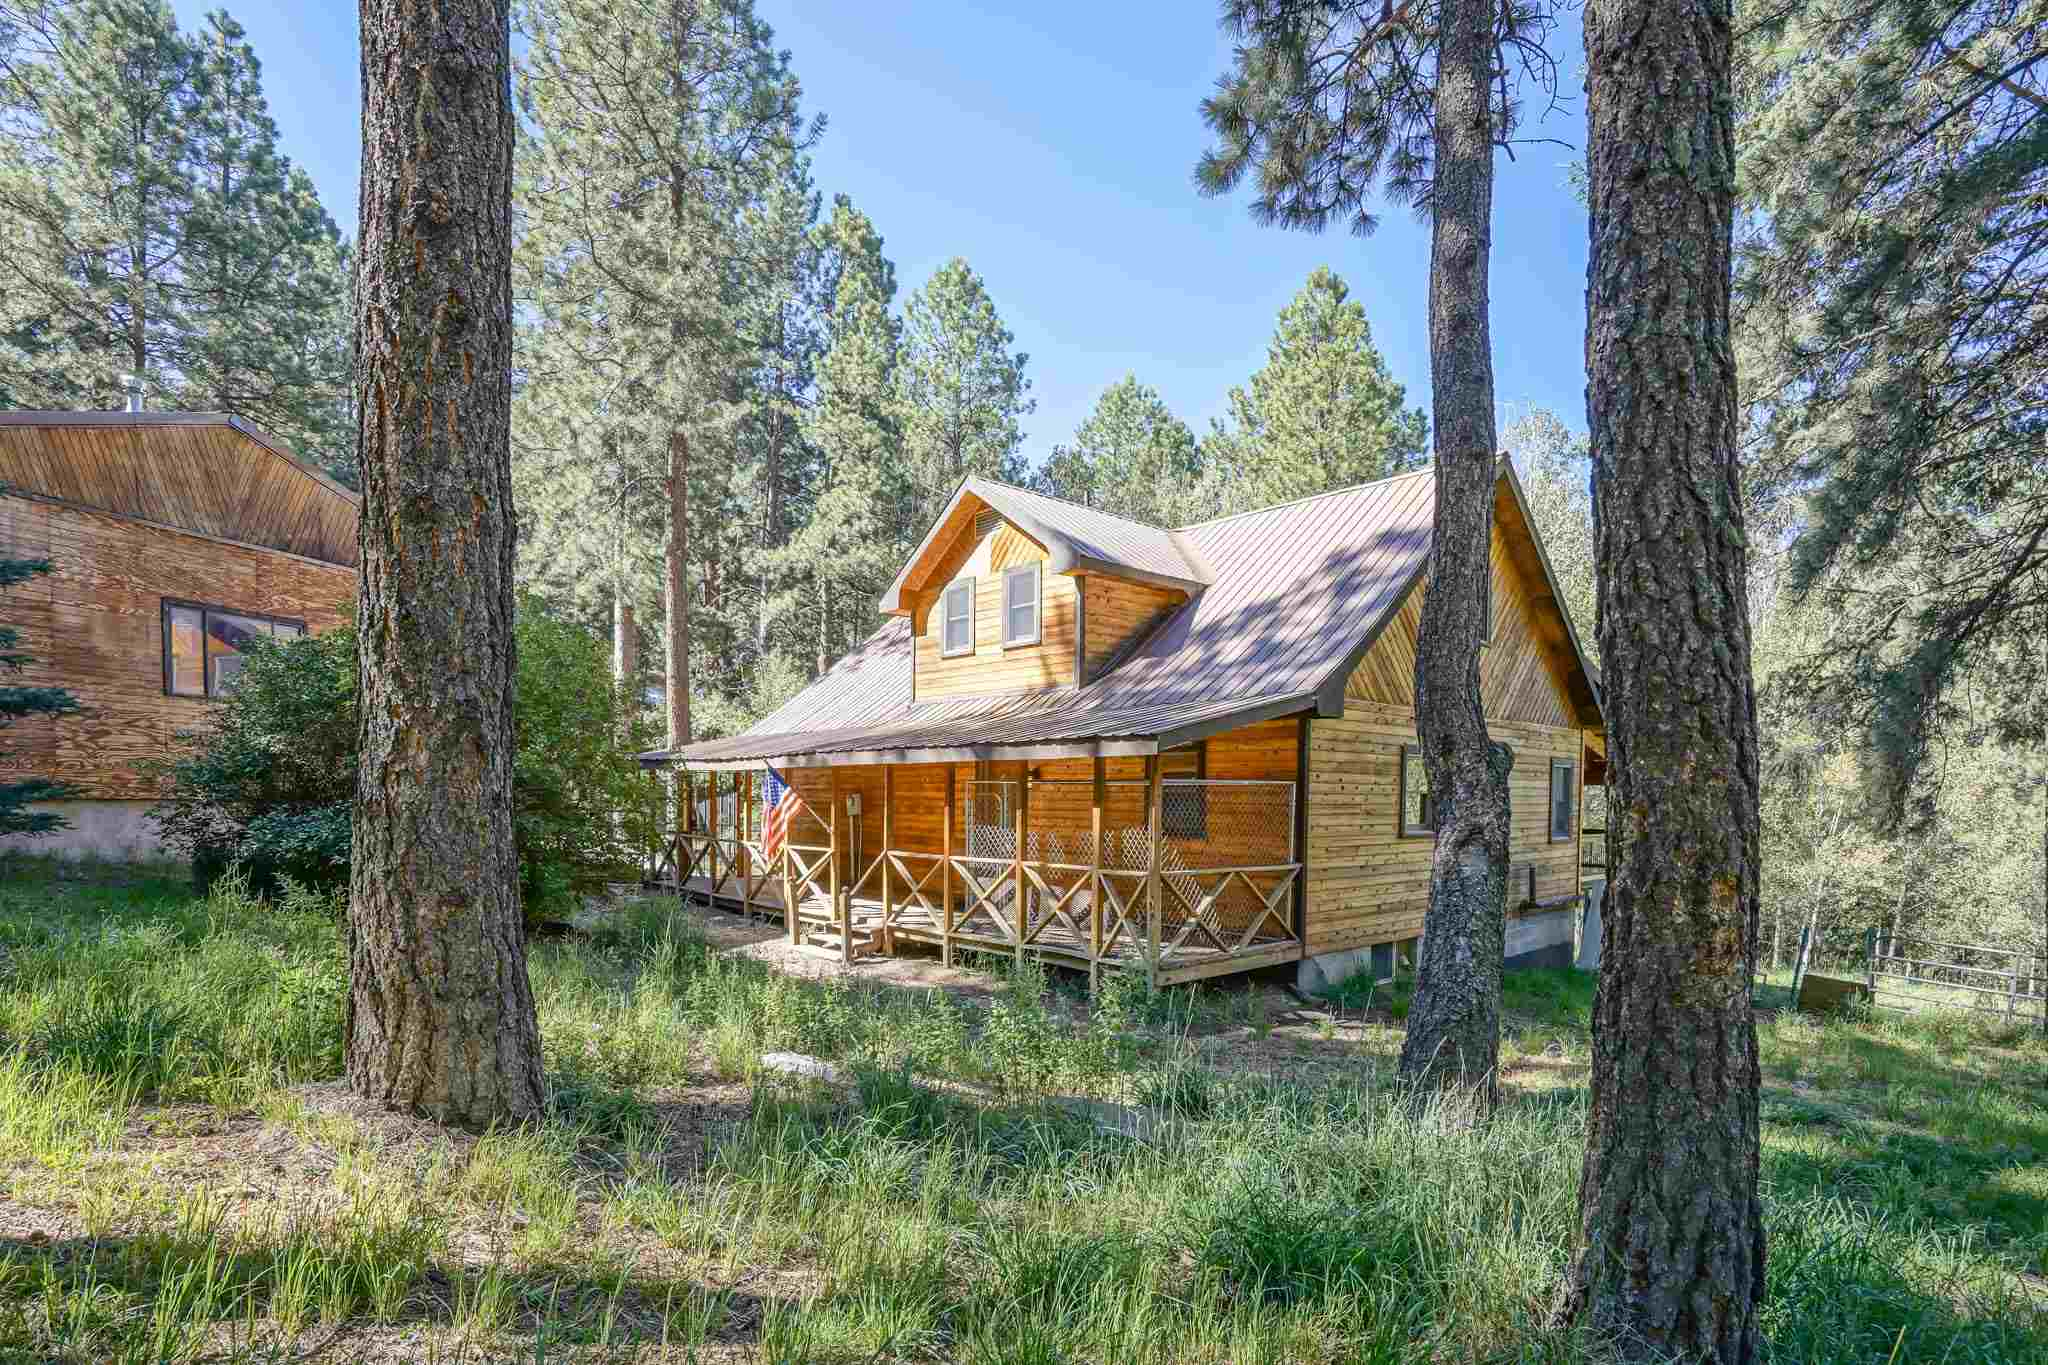 Ever imagine living on 1.4 picturesque acres in your very own mountain retreat with ''those'' views? Dream no more! This move-in ready home has it all, 1400sq.ft. beautiful decks perfect for outdoor dining. Relax and breathe in sweet mountain air, watch the wildlife or, entertain. Just a short 3/4 mi. hike to the Jemez river for fishing, cooling off in the falls. Ride out access to OHV trails. After a day outdoors, come home to your relaxing spacious yet cozy, retreat. Lovely wood floors, inviting wood stove, three bedrooms. Work from home in the large study. Transform this 1200 sq.ft. walkout basement into what you've dreamed; game room, theatre? There's a 1000 square foot shop large enough for the RV. Only a 25 minute commute to Los Alamos! Escape to the mountains, live the dream!!